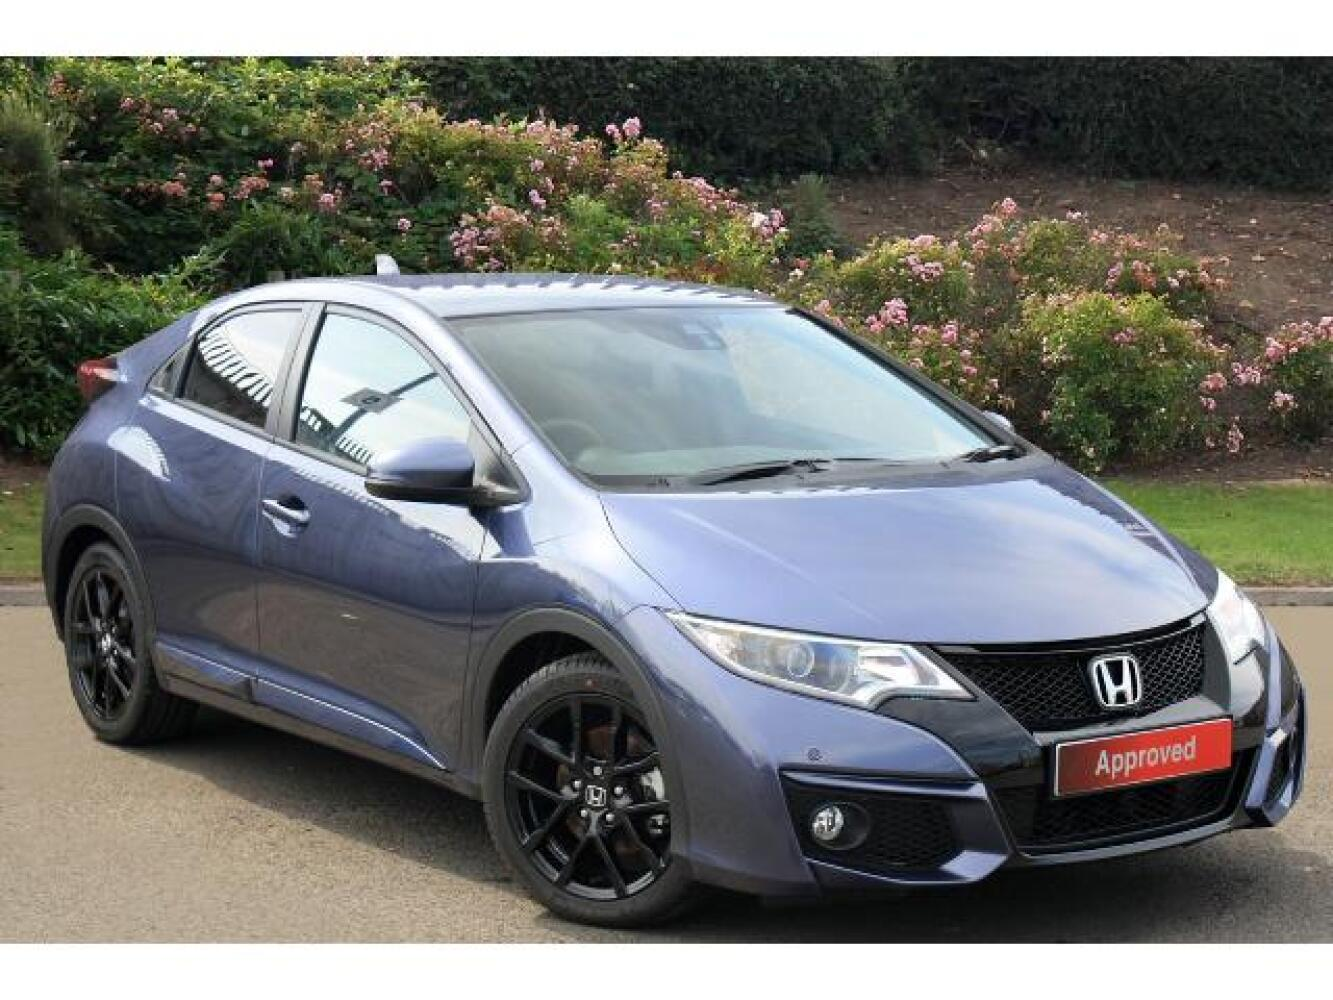 used honda civic 1 6 i dtec sport 5dr nav diesel hatchback for sale vertu honda. Black Bedroom Furniture Sets. Home Design Ideas